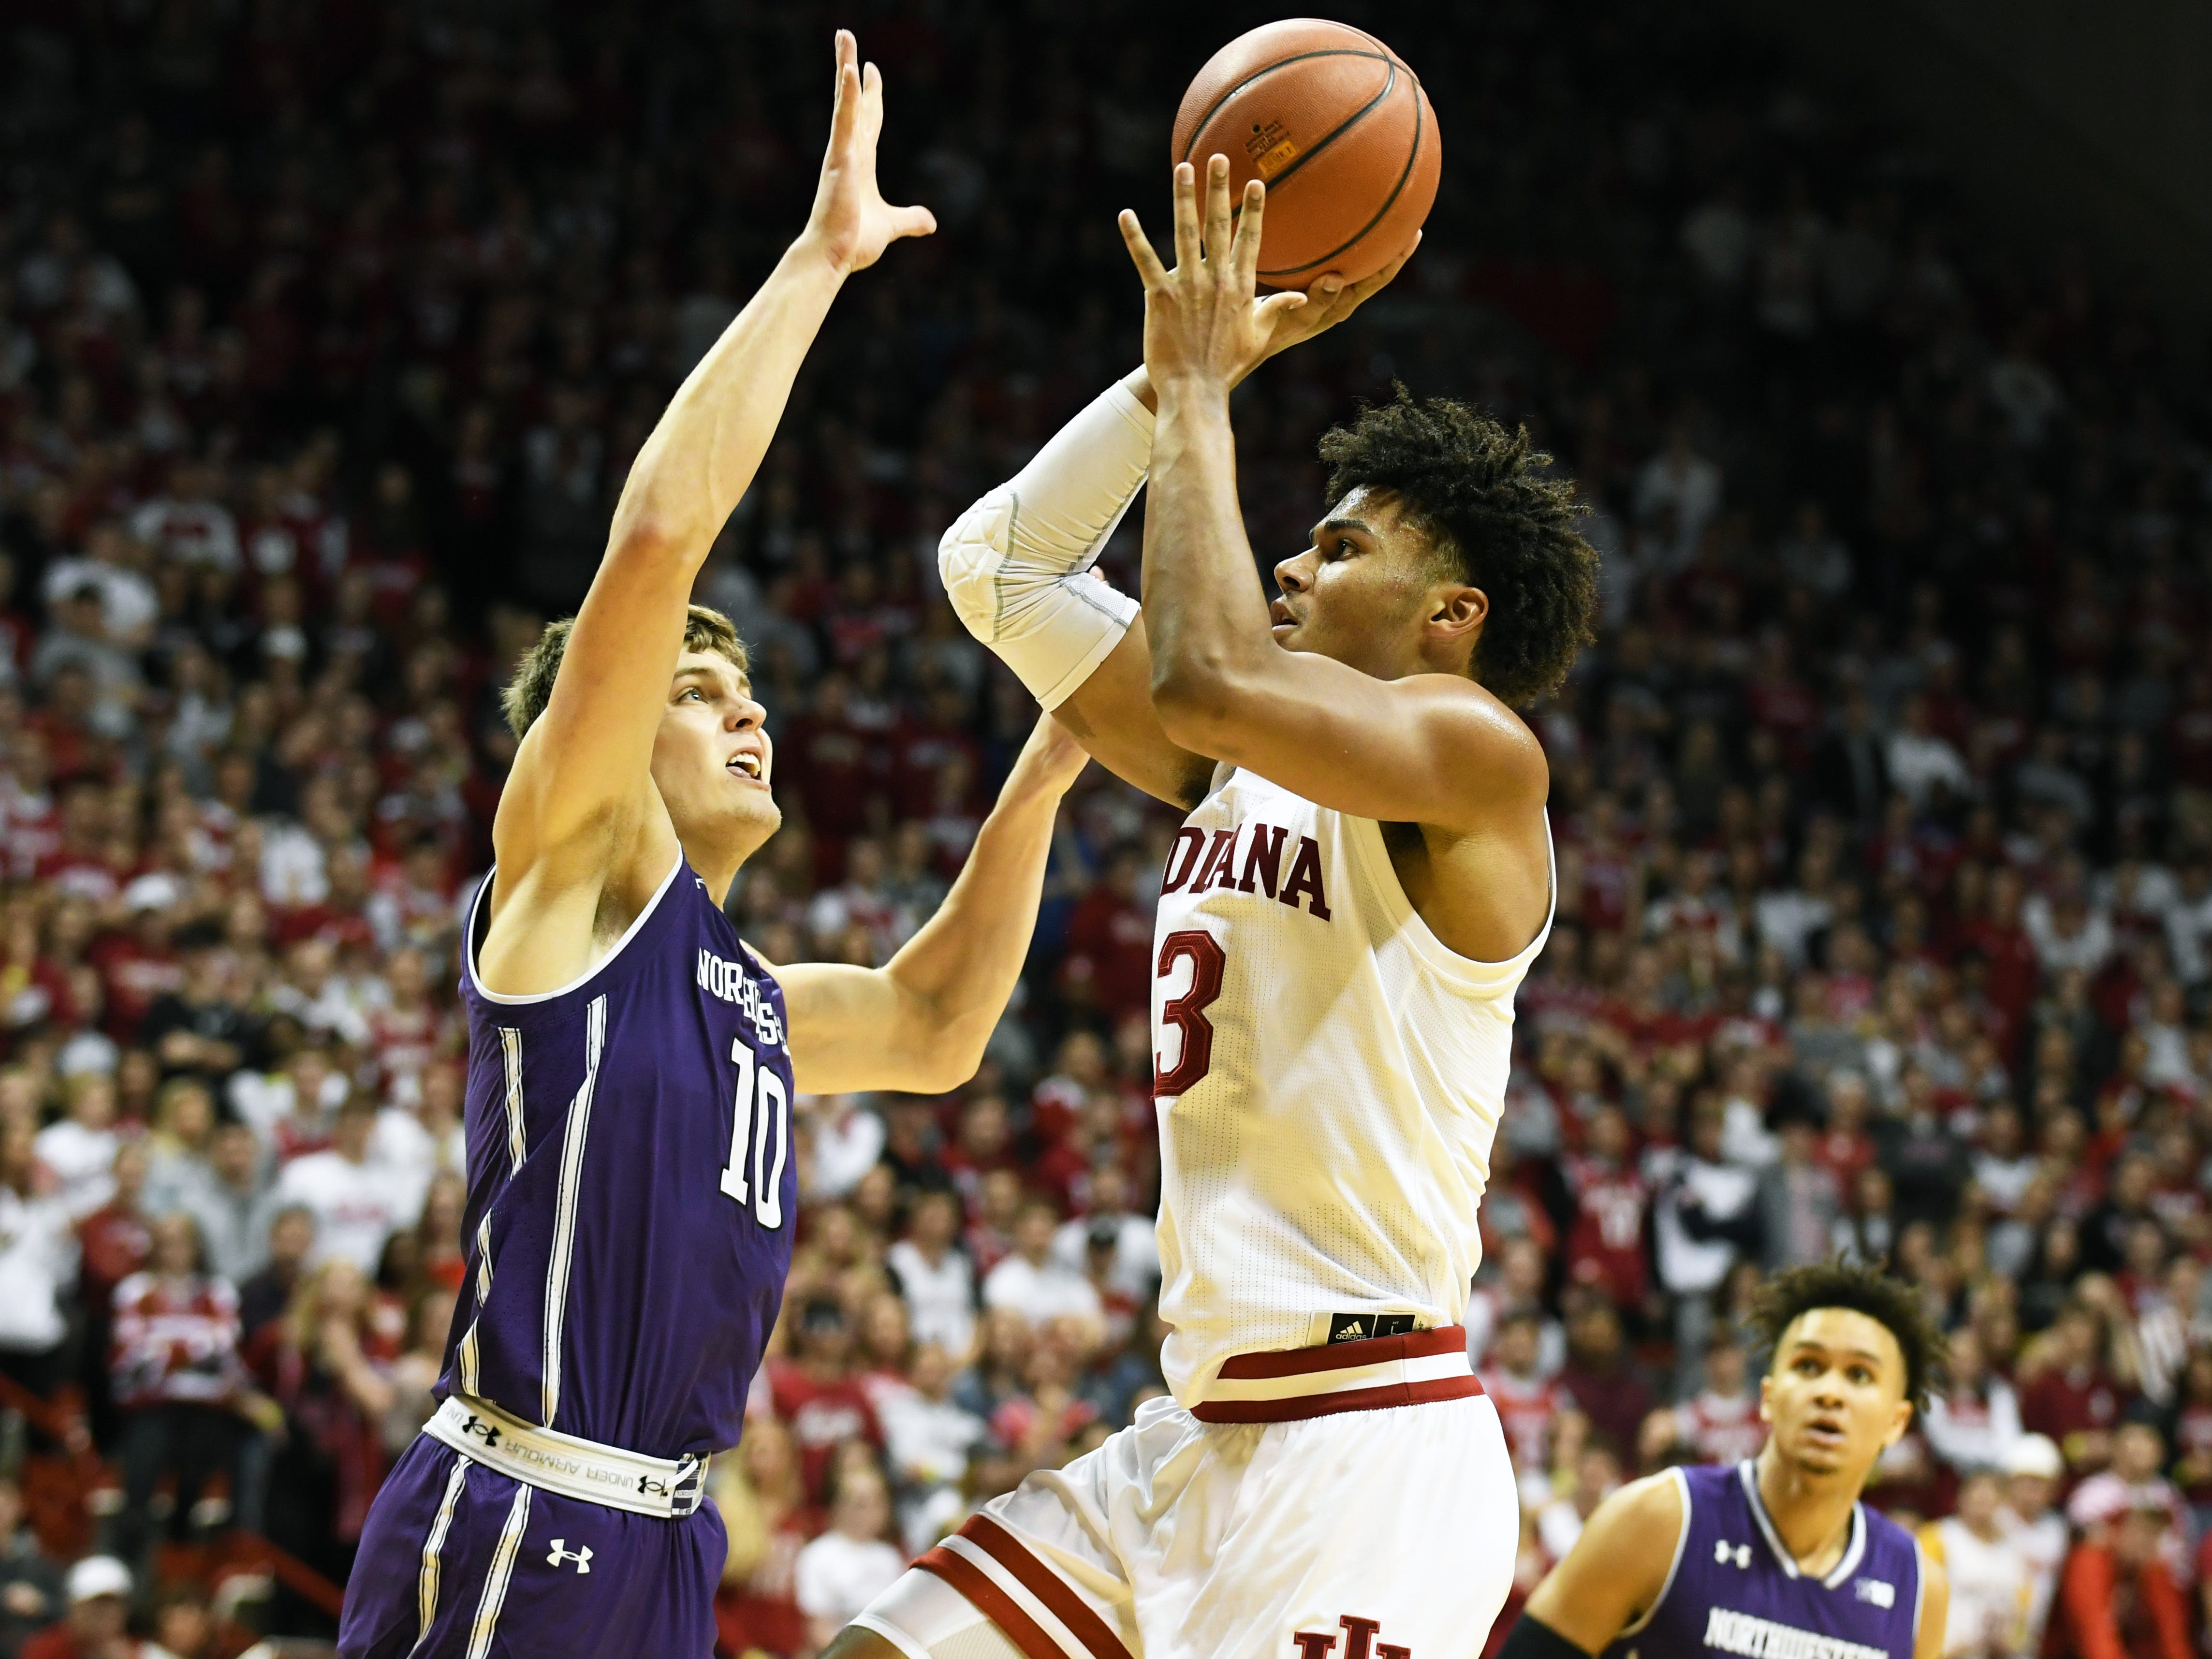 Indiana Hoosiers forward Justin Smith (3) shoots the ball during the game against Northwestern at Simon Skjodt Assembly Hall in Bloomington, Ind., on Saturday, Dec. 1, 2018.